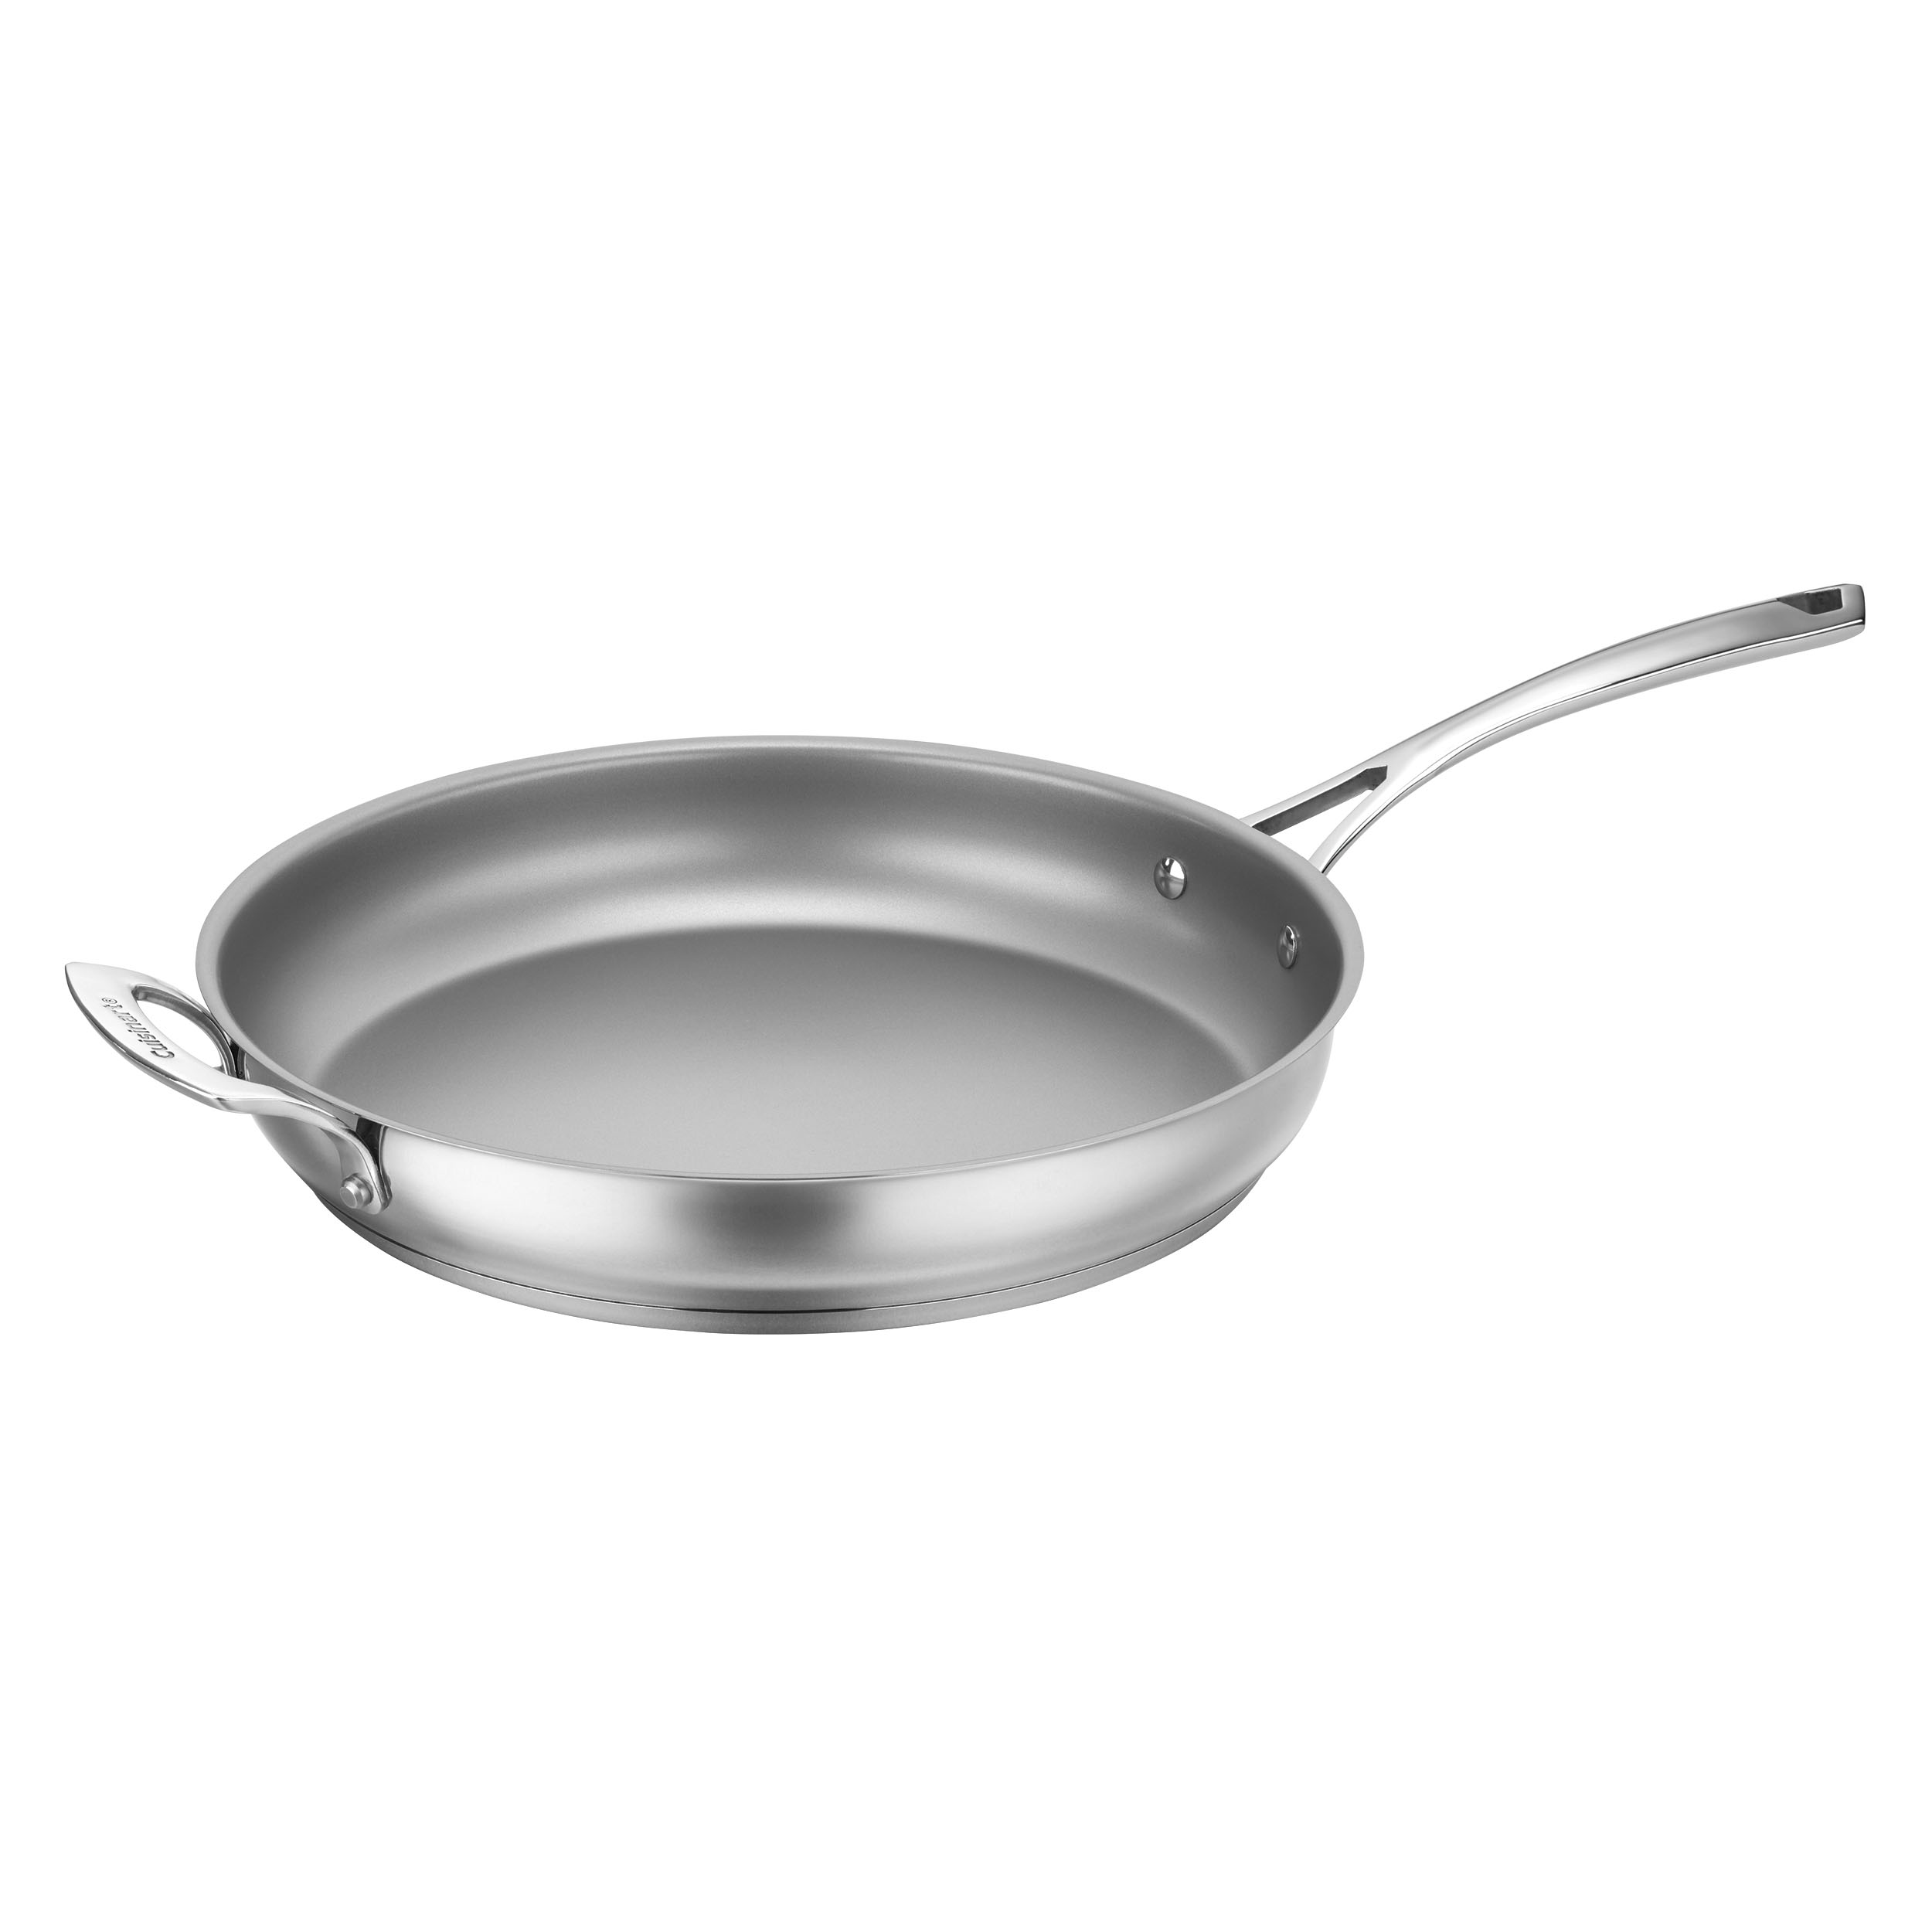 "12"" Non-Stick Skillet with Helper Handle"